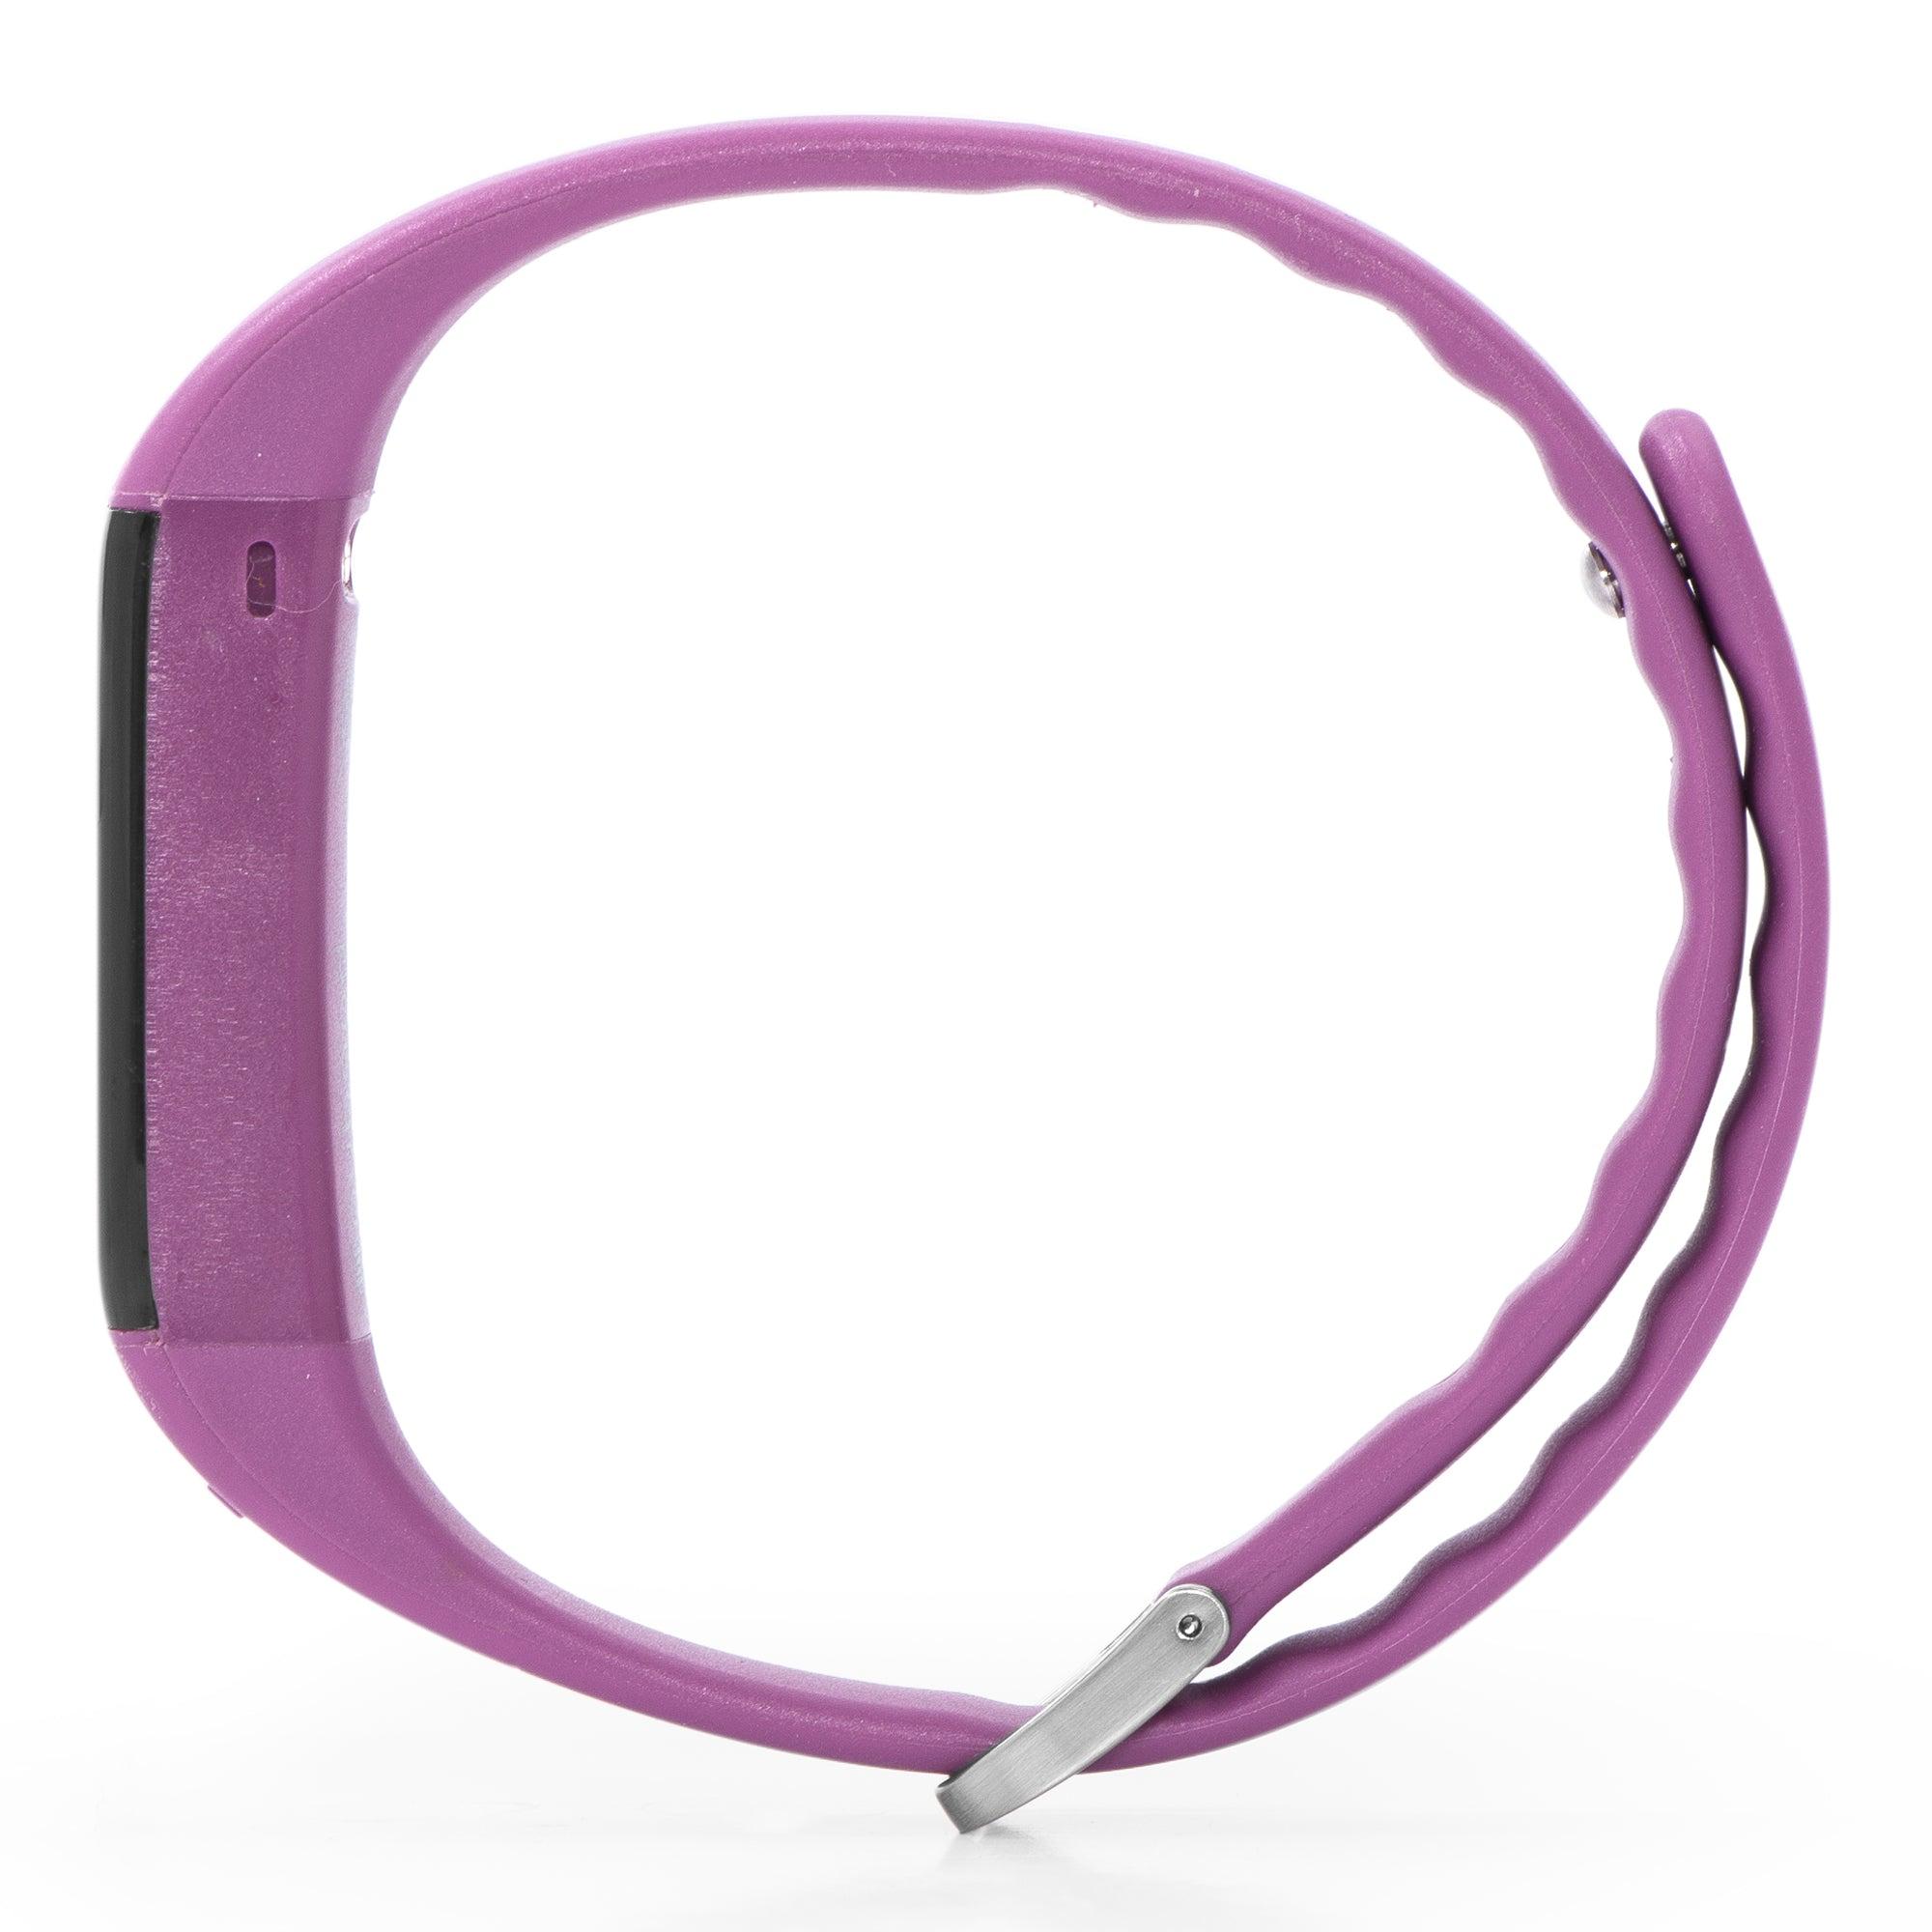 NUBAND ACTIV+2 - Slim Activity And Sleep Tracker (Plum)